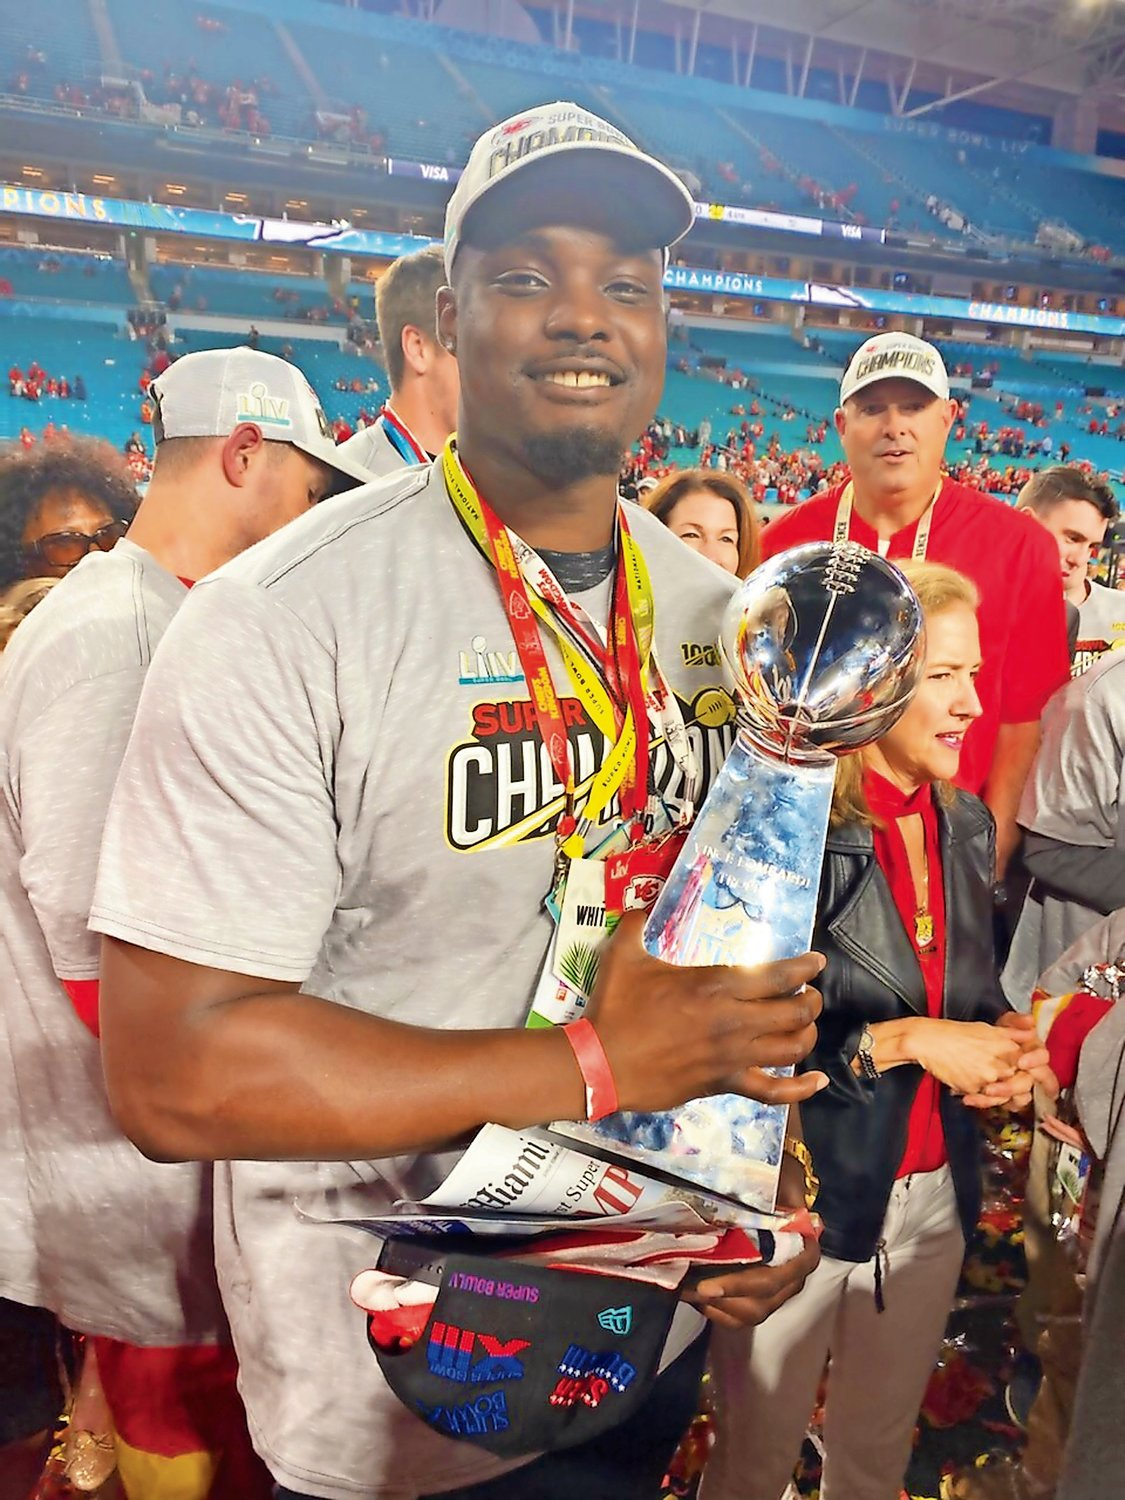 Greg Senat is an offensive tackle for the Super Bowl-winning Kansas City Chiefs.